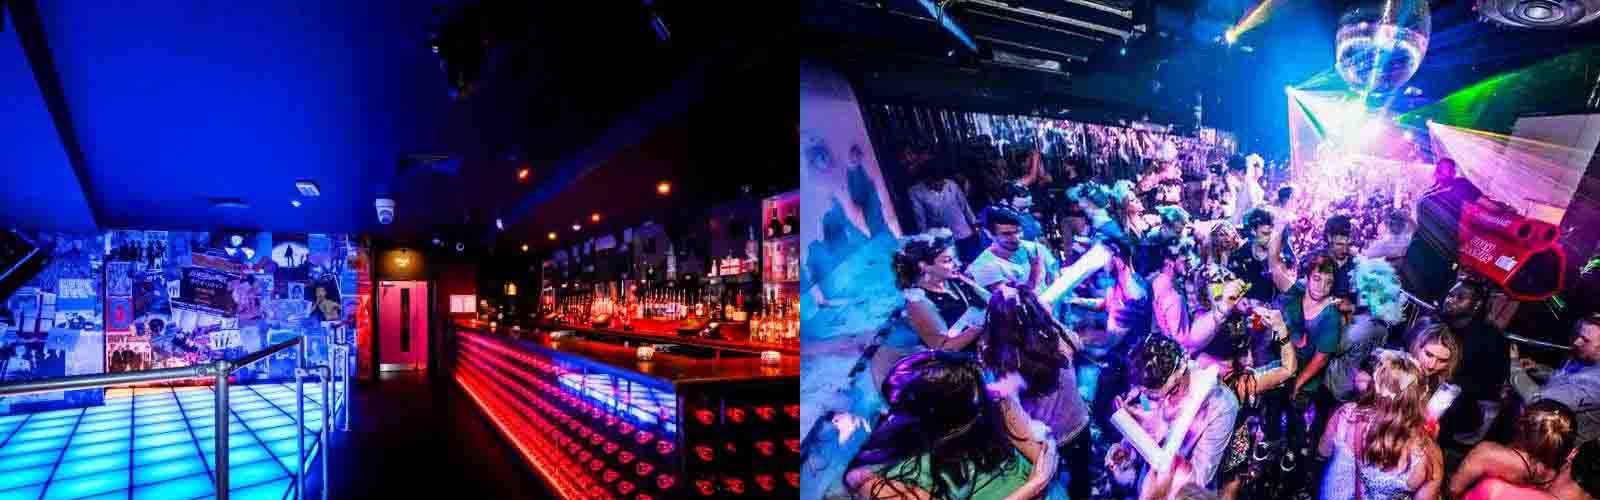 Piccadilly Institute is a famous London nightclub. When visiting London make sure to drop by this club with your Nightlife Ticket, receive free entrance and enjoy the experience.